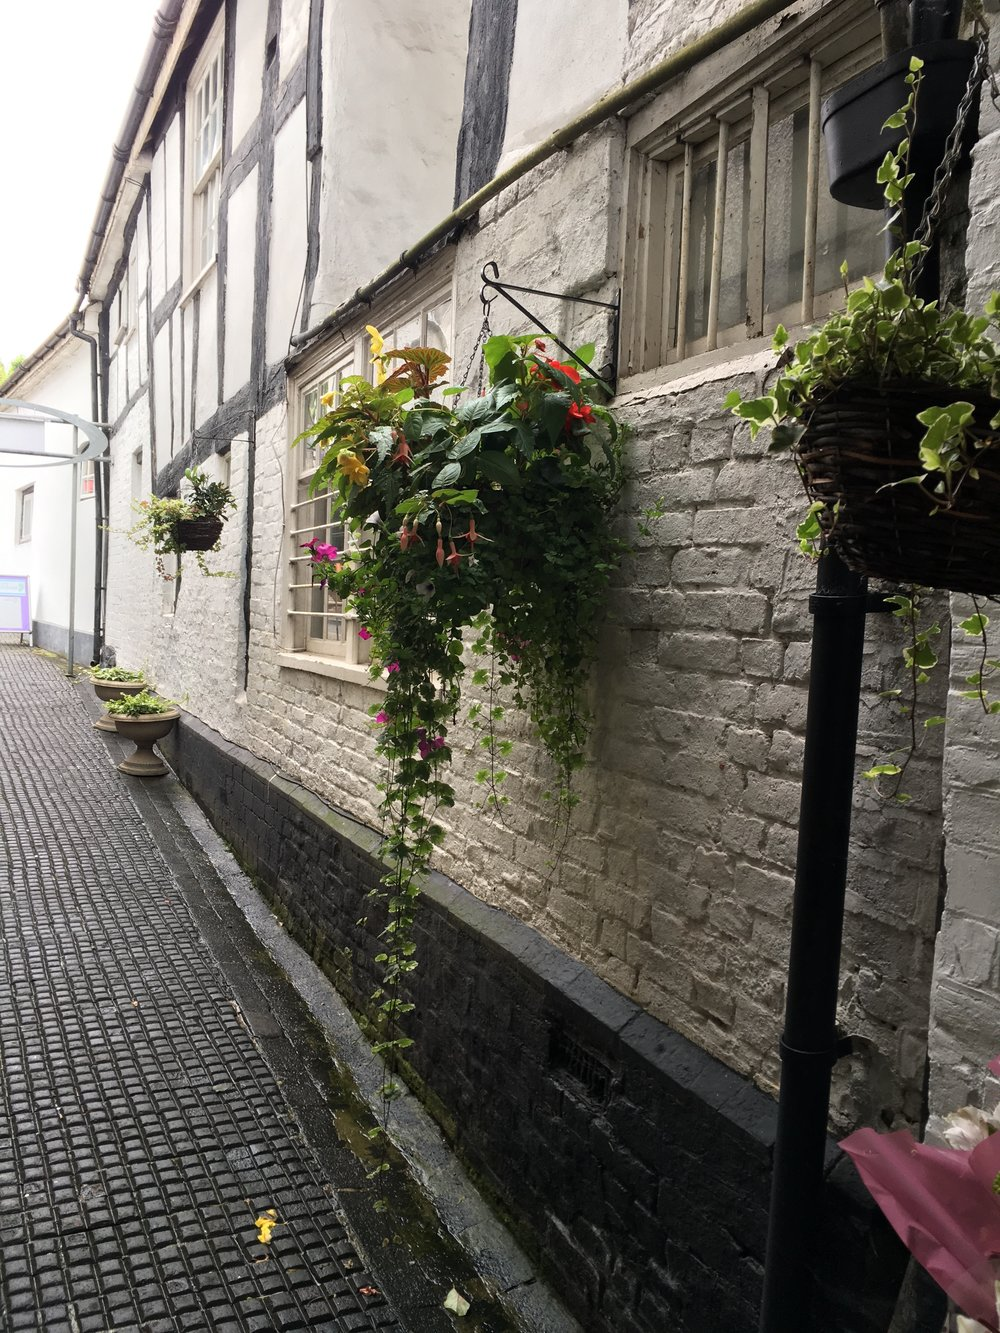 Ledbury is full of buildings like this with beautiful old brickwork, characterful windows and look at those hanging baskets! Inspiration for a trailing bouquet.